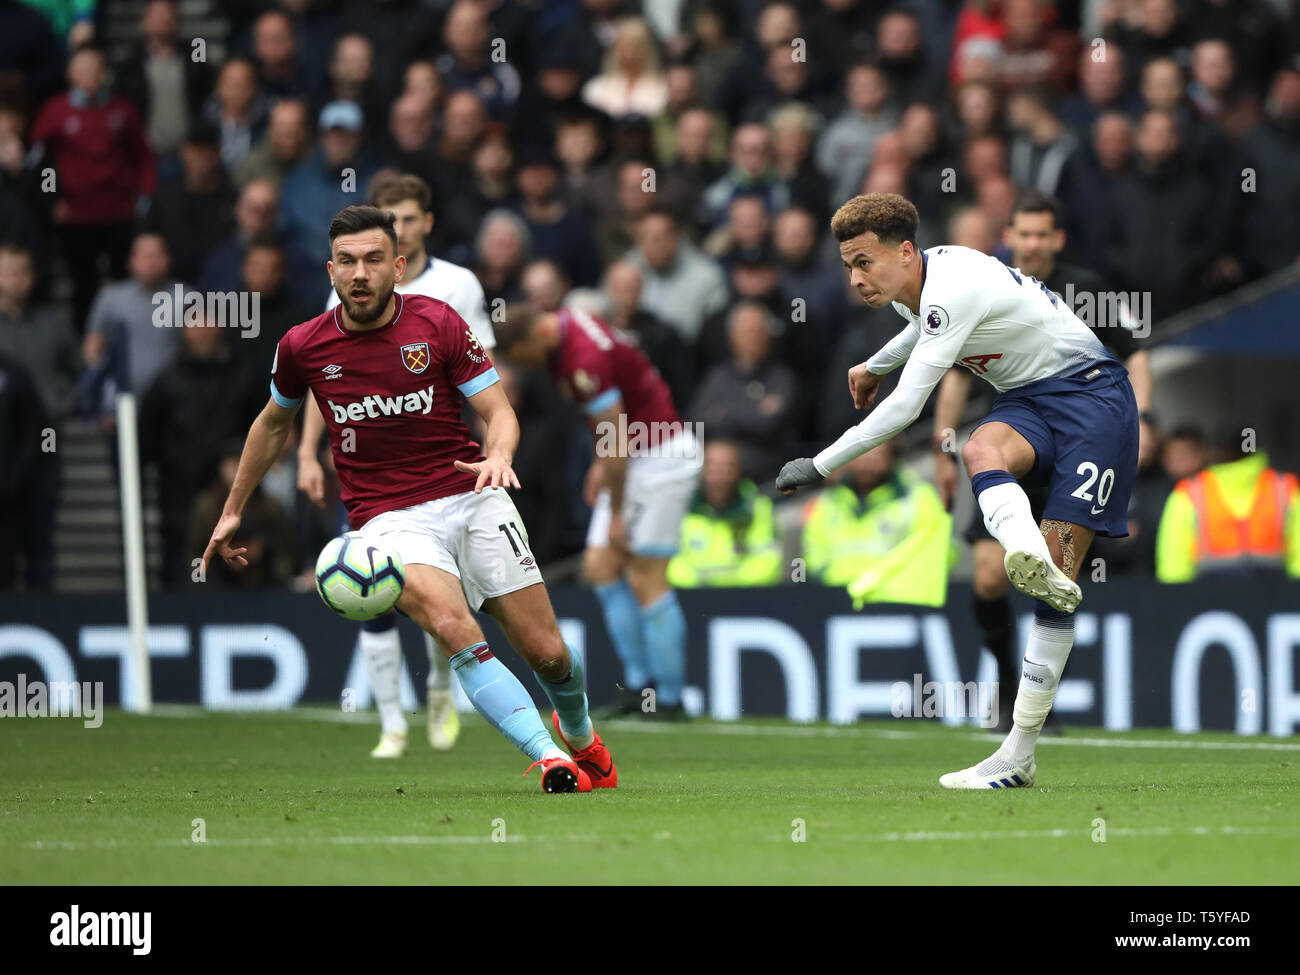 London, UK. 27th Apr 2019. Robert Snodgrass (WHU) Dele Alli (TH) at the Tottenham Hotspur v West Ham United English Premier League match, at The Tottenham Hotspur Stadium, London, UK on April 27, 2019. **Editorial use only, license required for commercial use. No use in betting, games or a single club/league/player publications** Credit: Paul Marriott/Alamy Live News - Stock Image